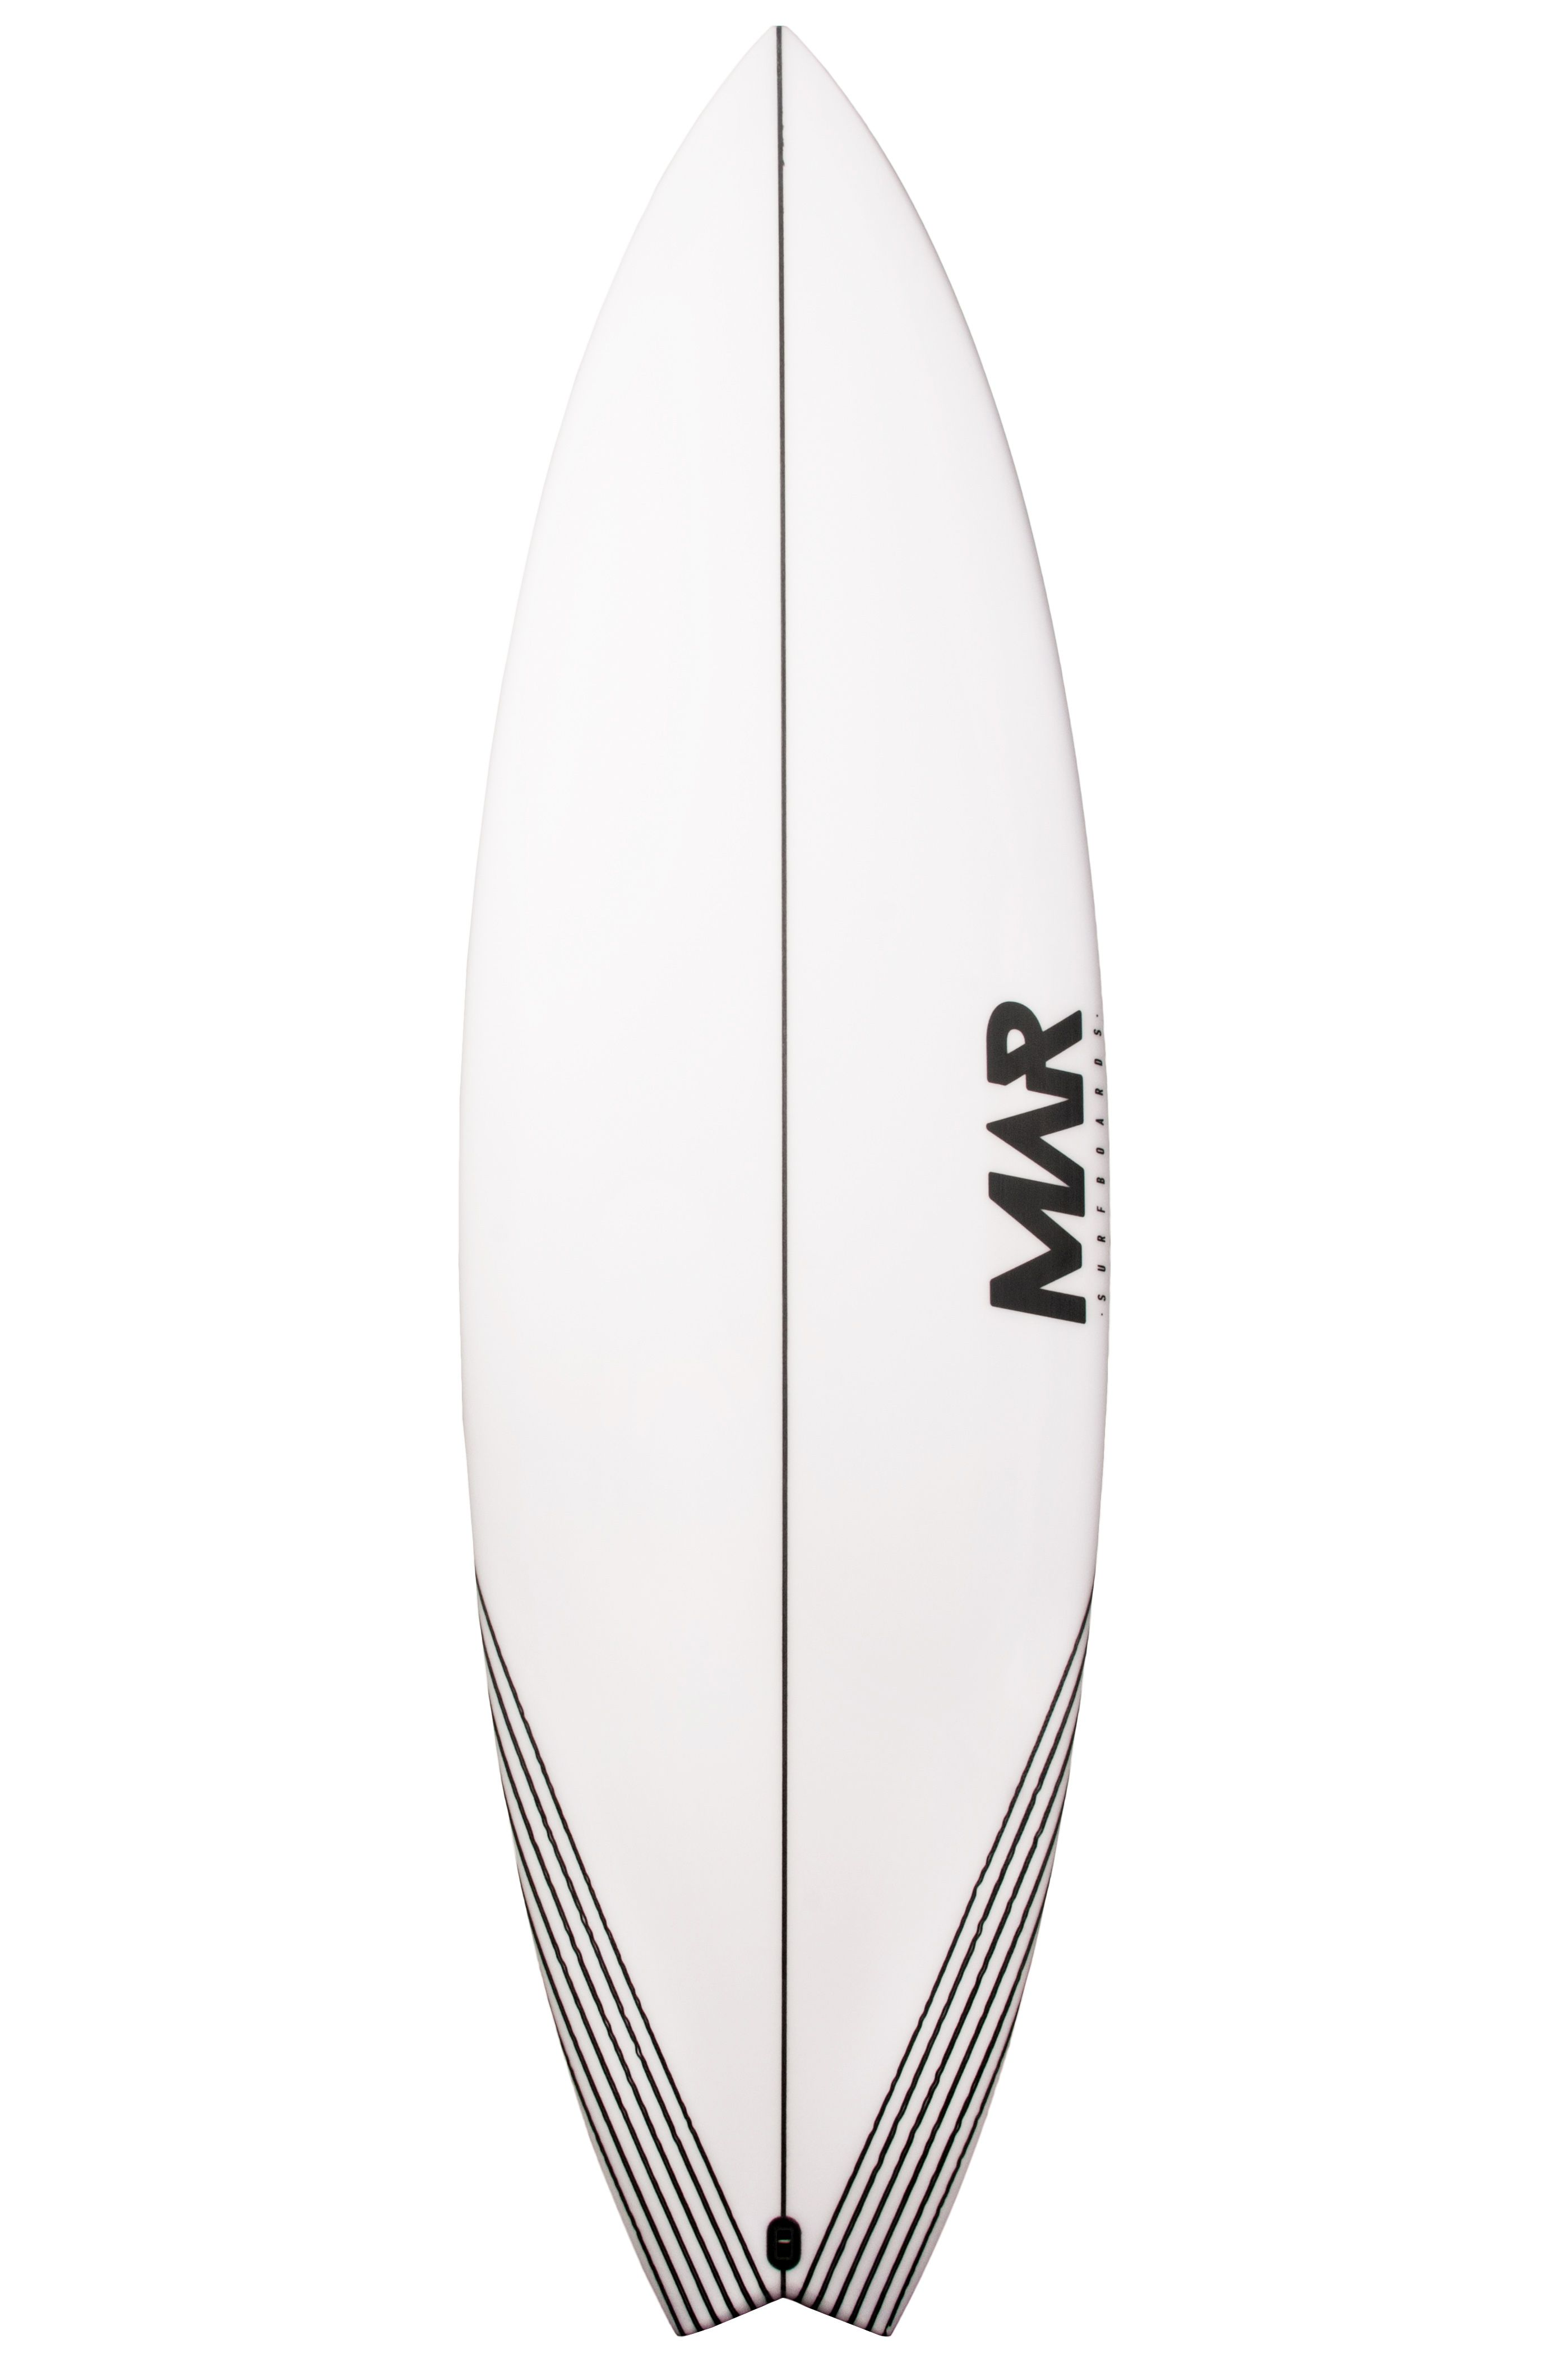 Prancha Surf Mar 5'7 PARROT PU Swallow Tail - White FCS II 5ft7